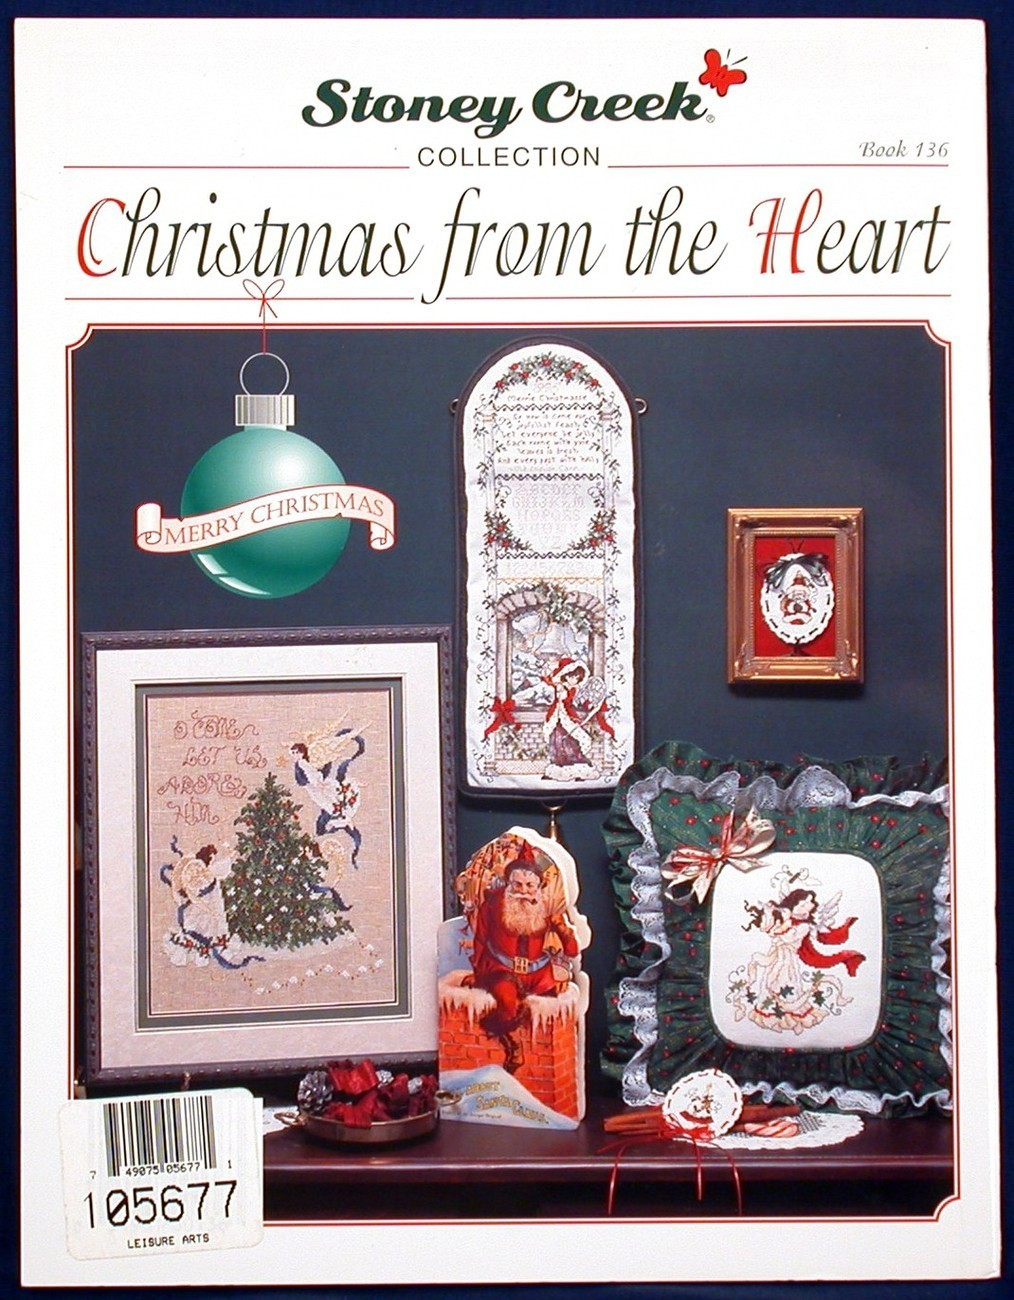 Christmas from the Heart Stoney Creek Cross Stitch Patterns Angels Book 136